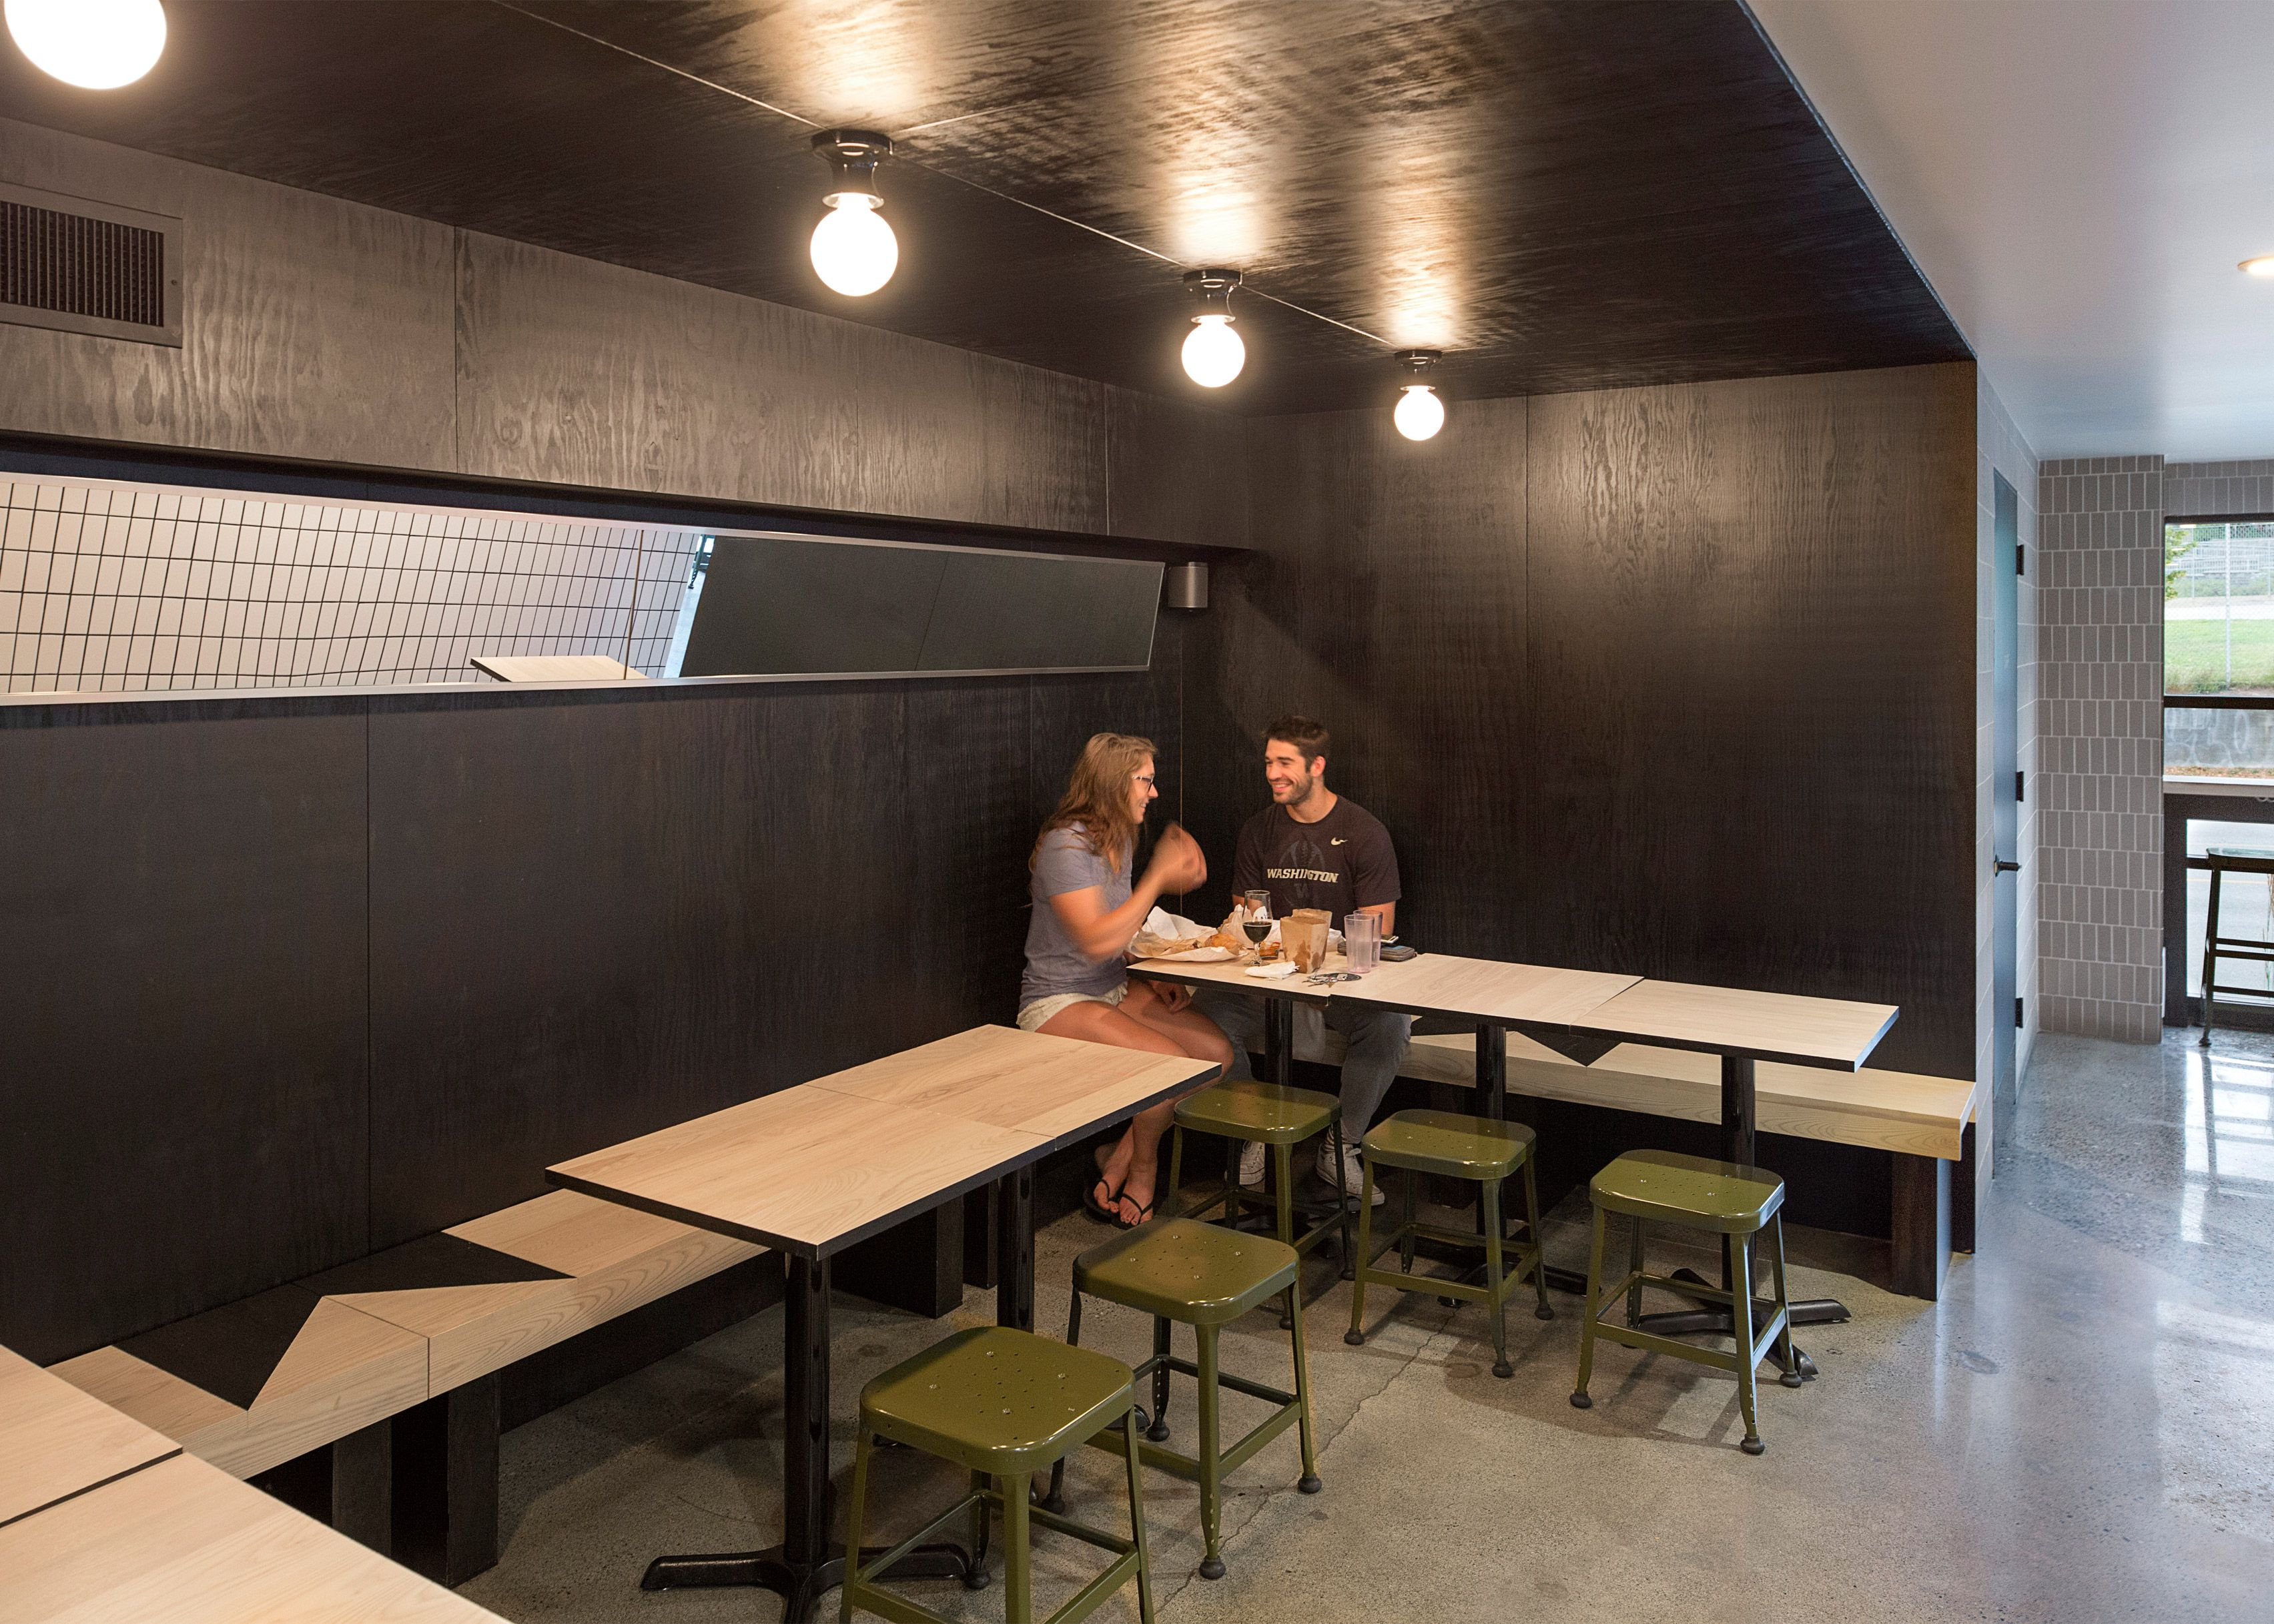 Mammoth cafe and bar in Seattle accommodates different social spaces